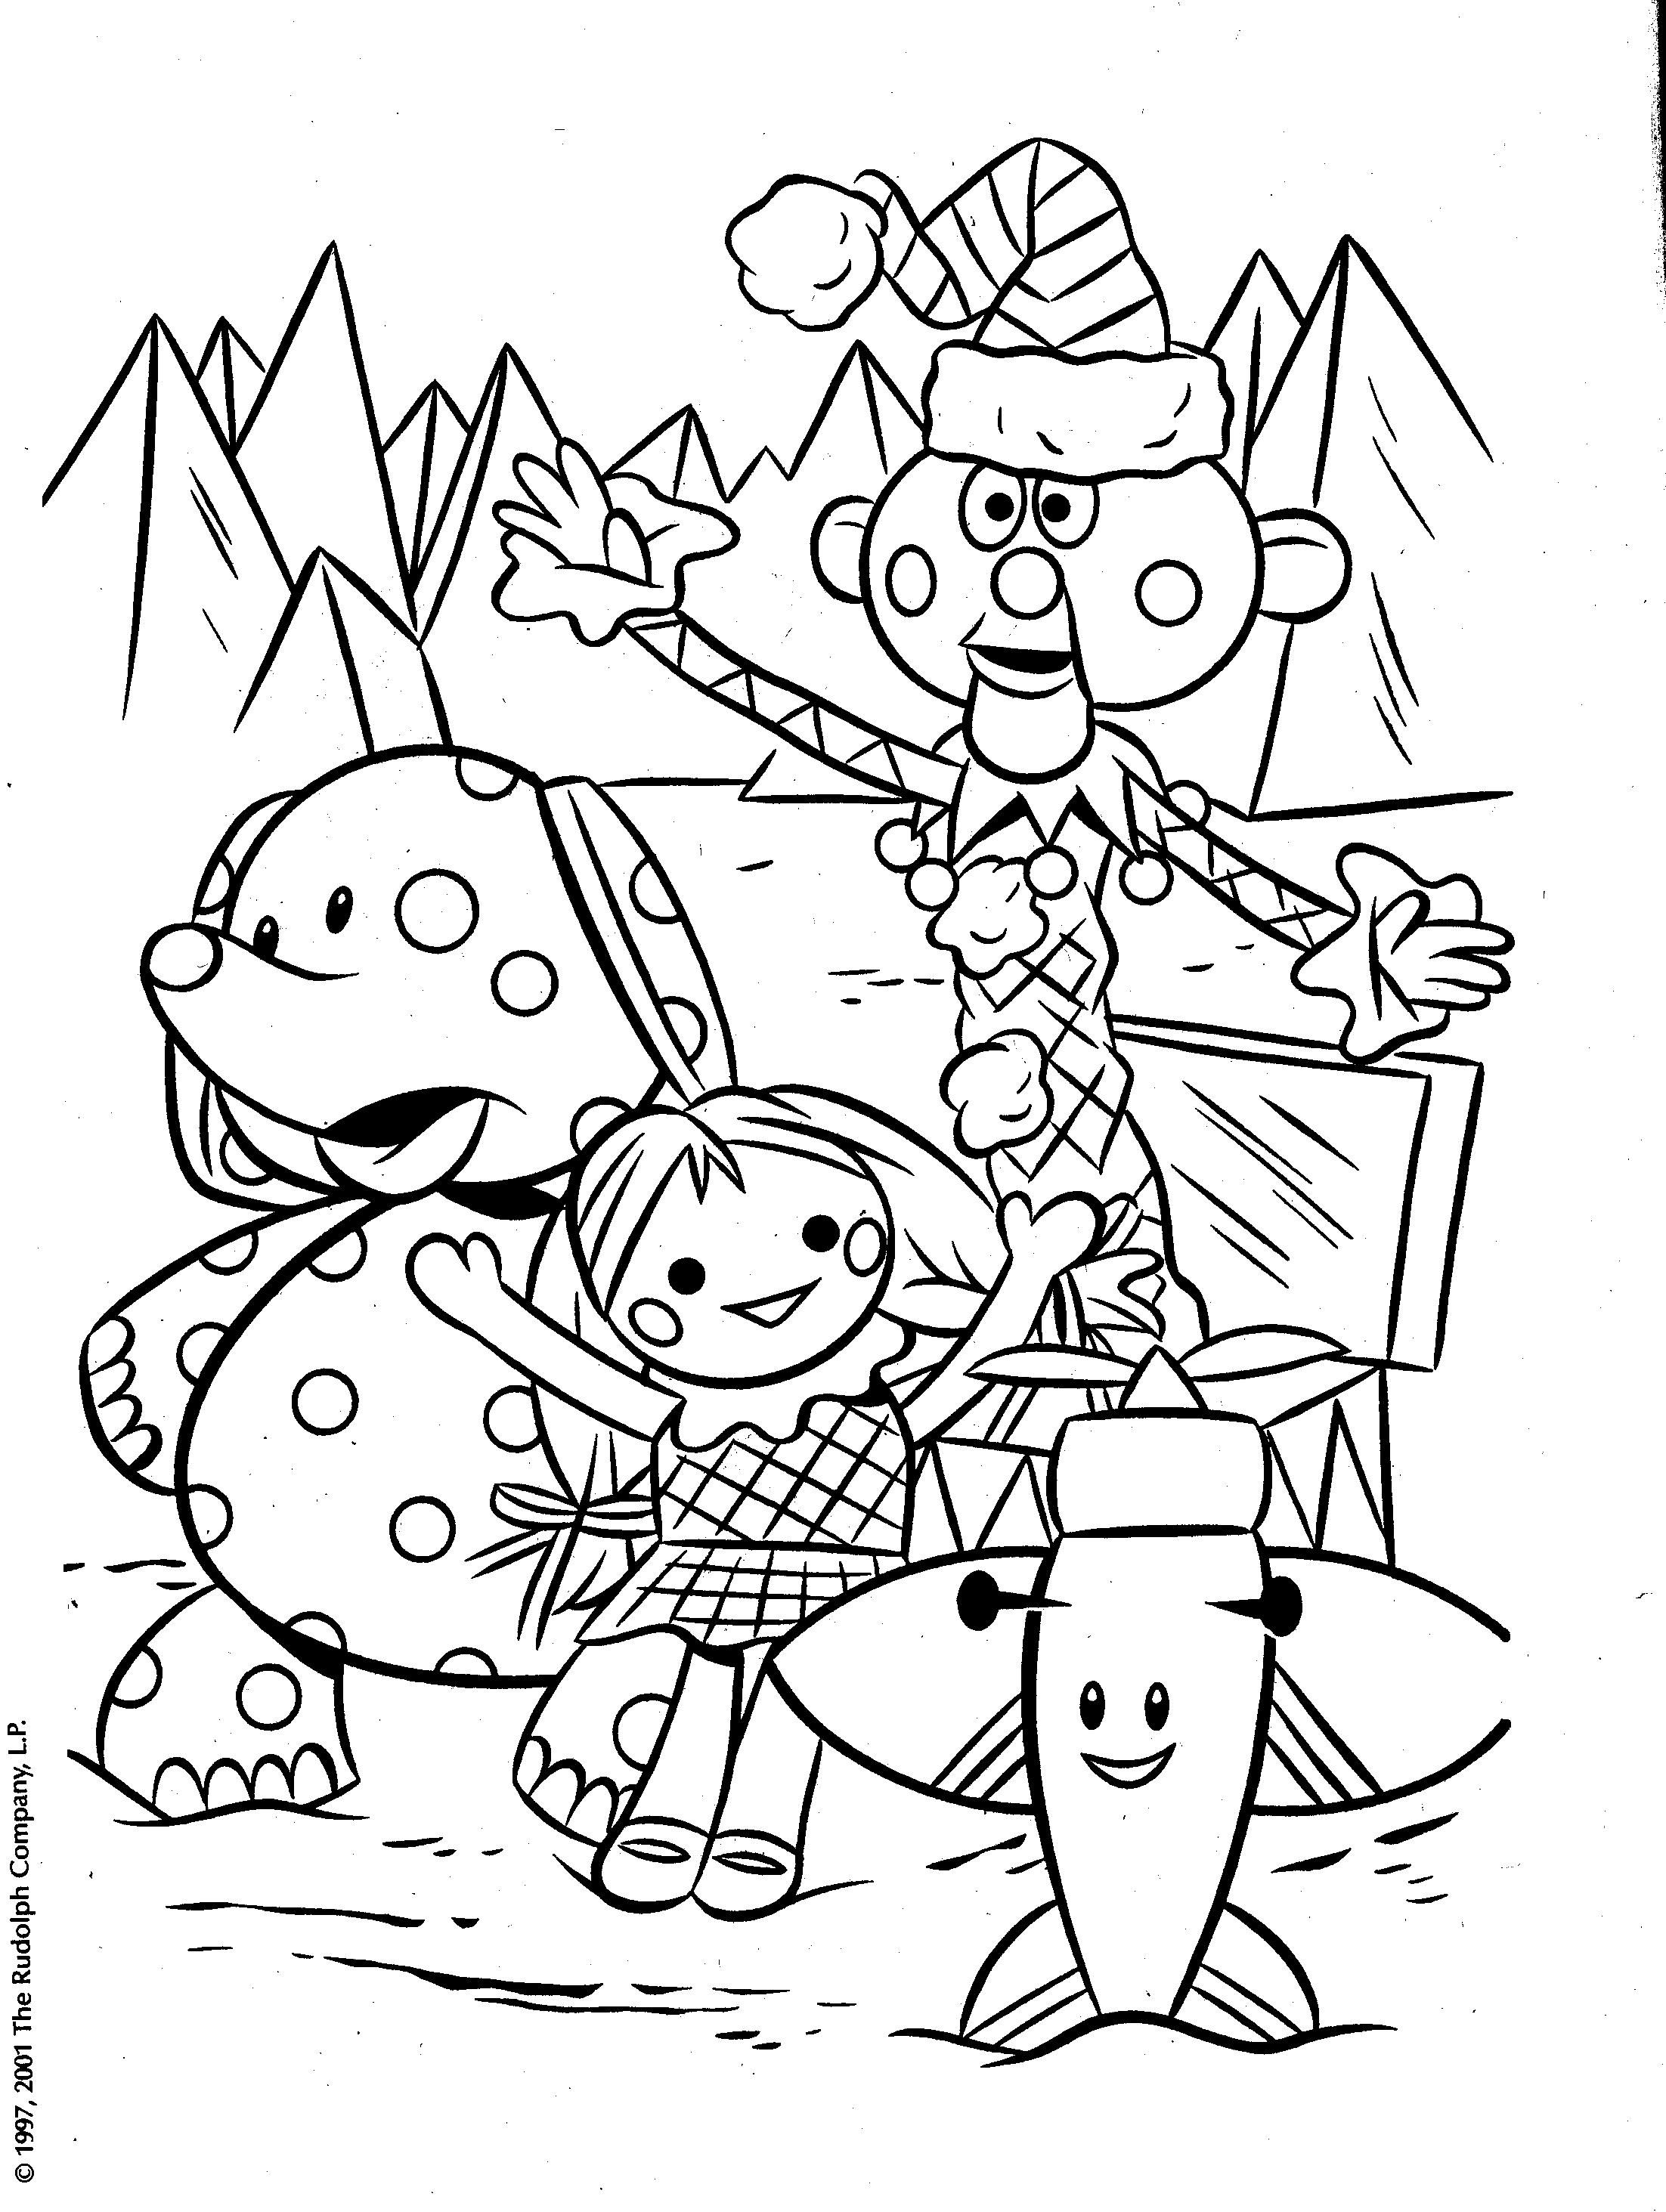 HD wallpapers misfit toys coloring pages